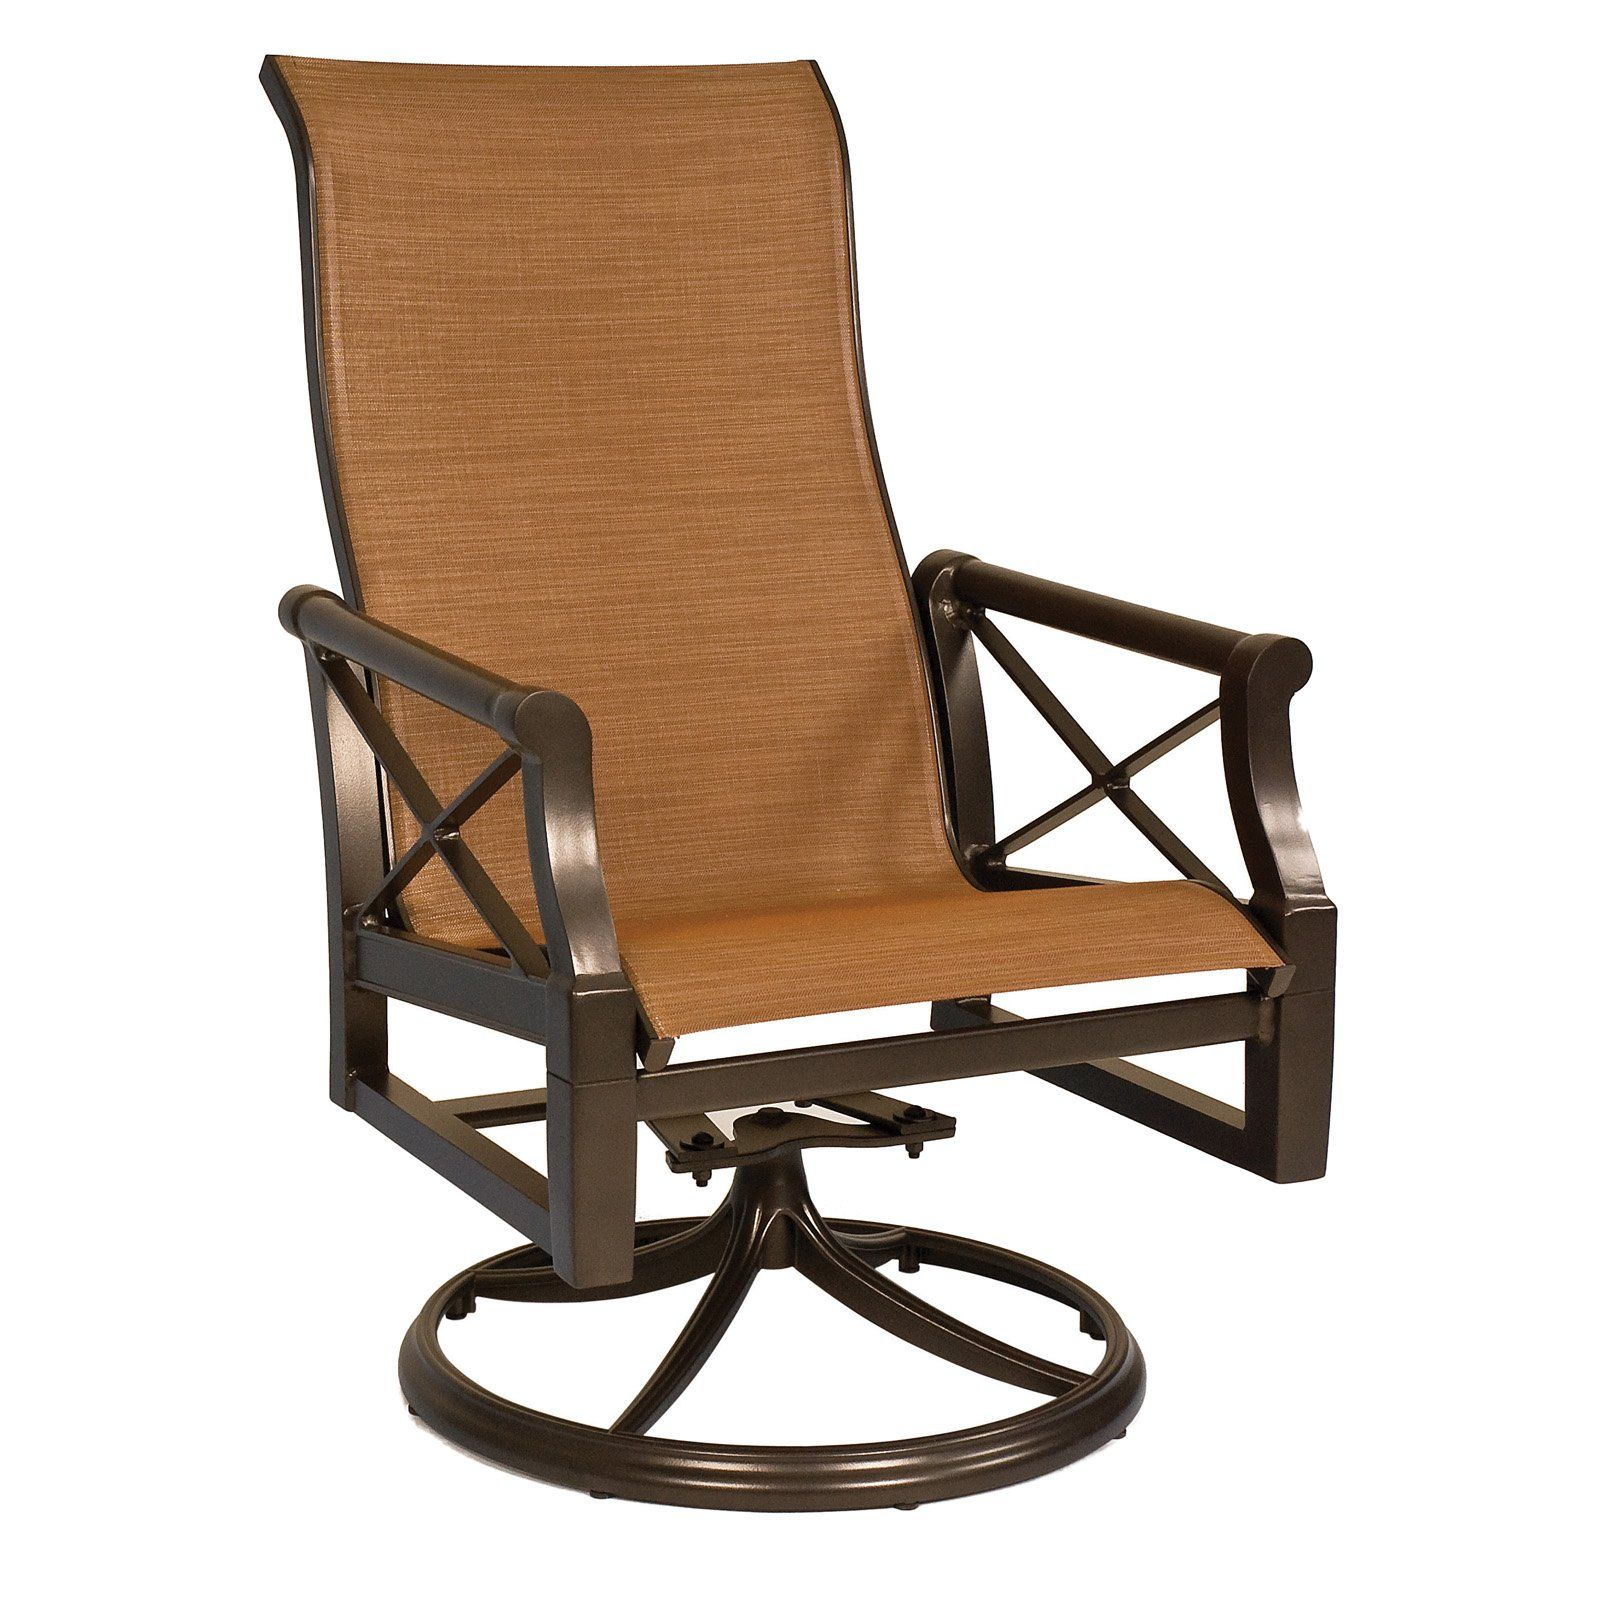 Outdoor Woodard Andover Sling High Back Swivel Rocker Dining Inside Sling High Back Swivel Chairs (View 9 of 25)